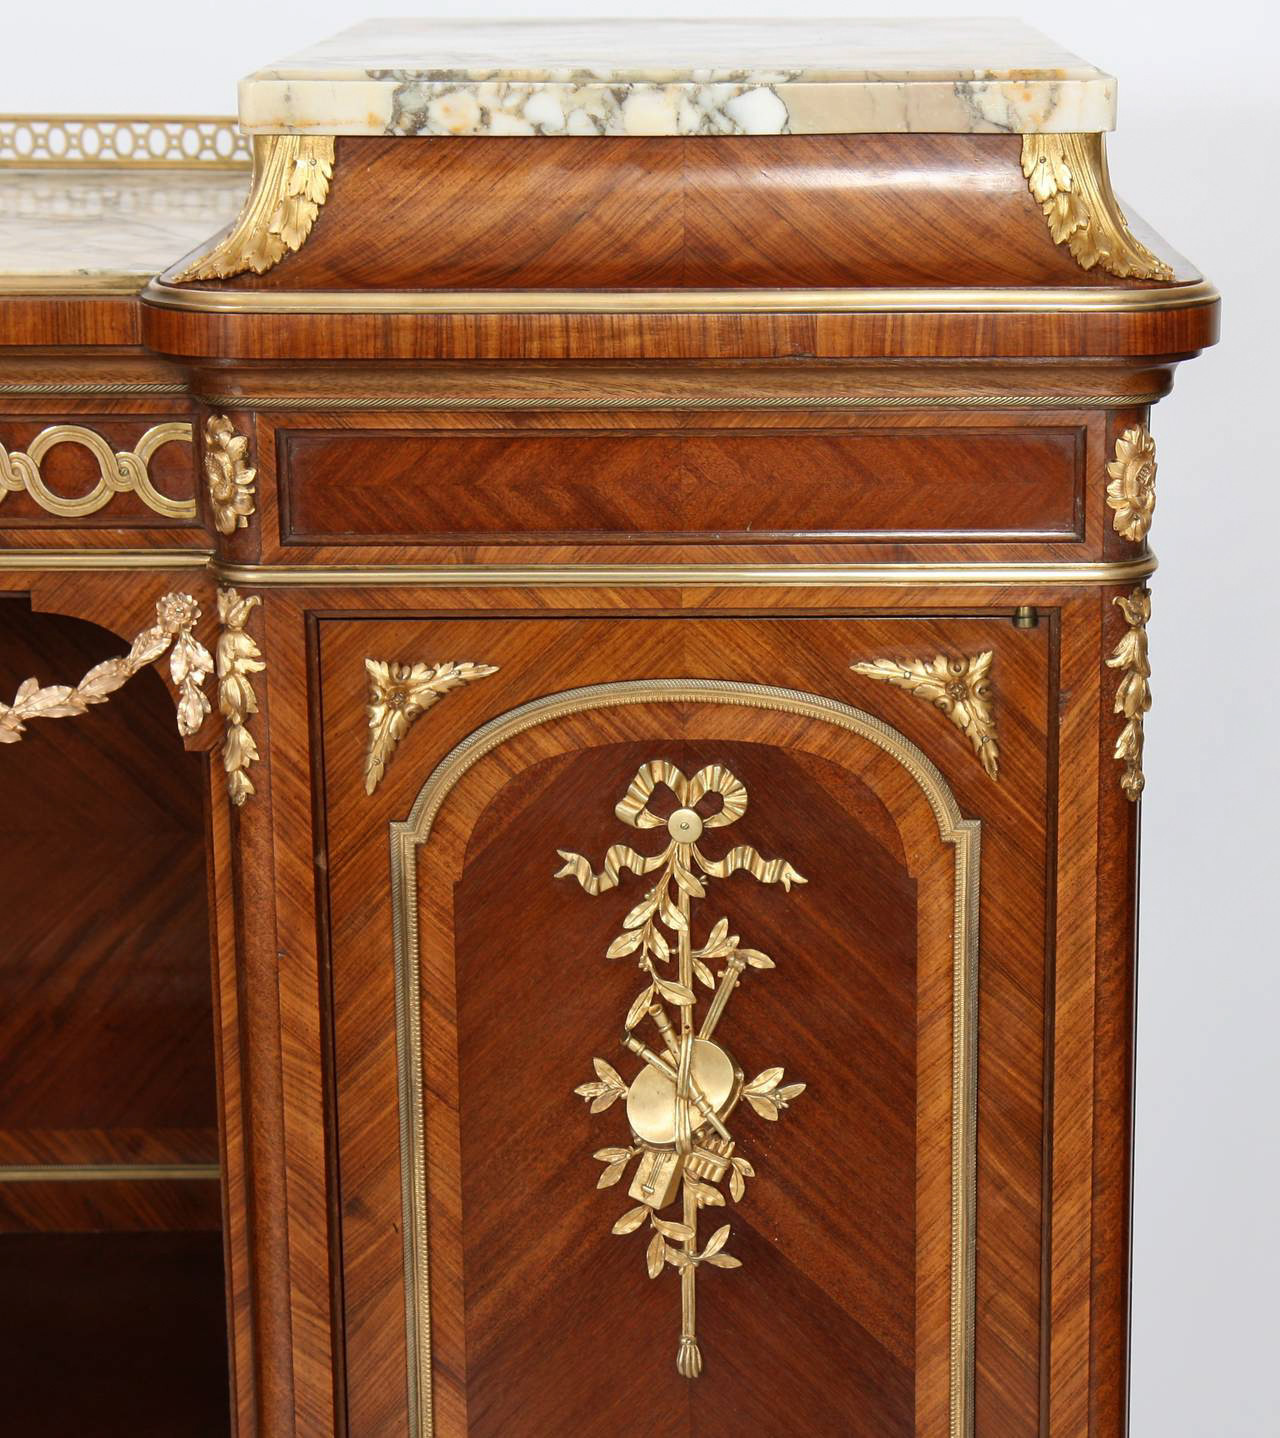 Inlaid Wood Music Cabinet by François Linke.